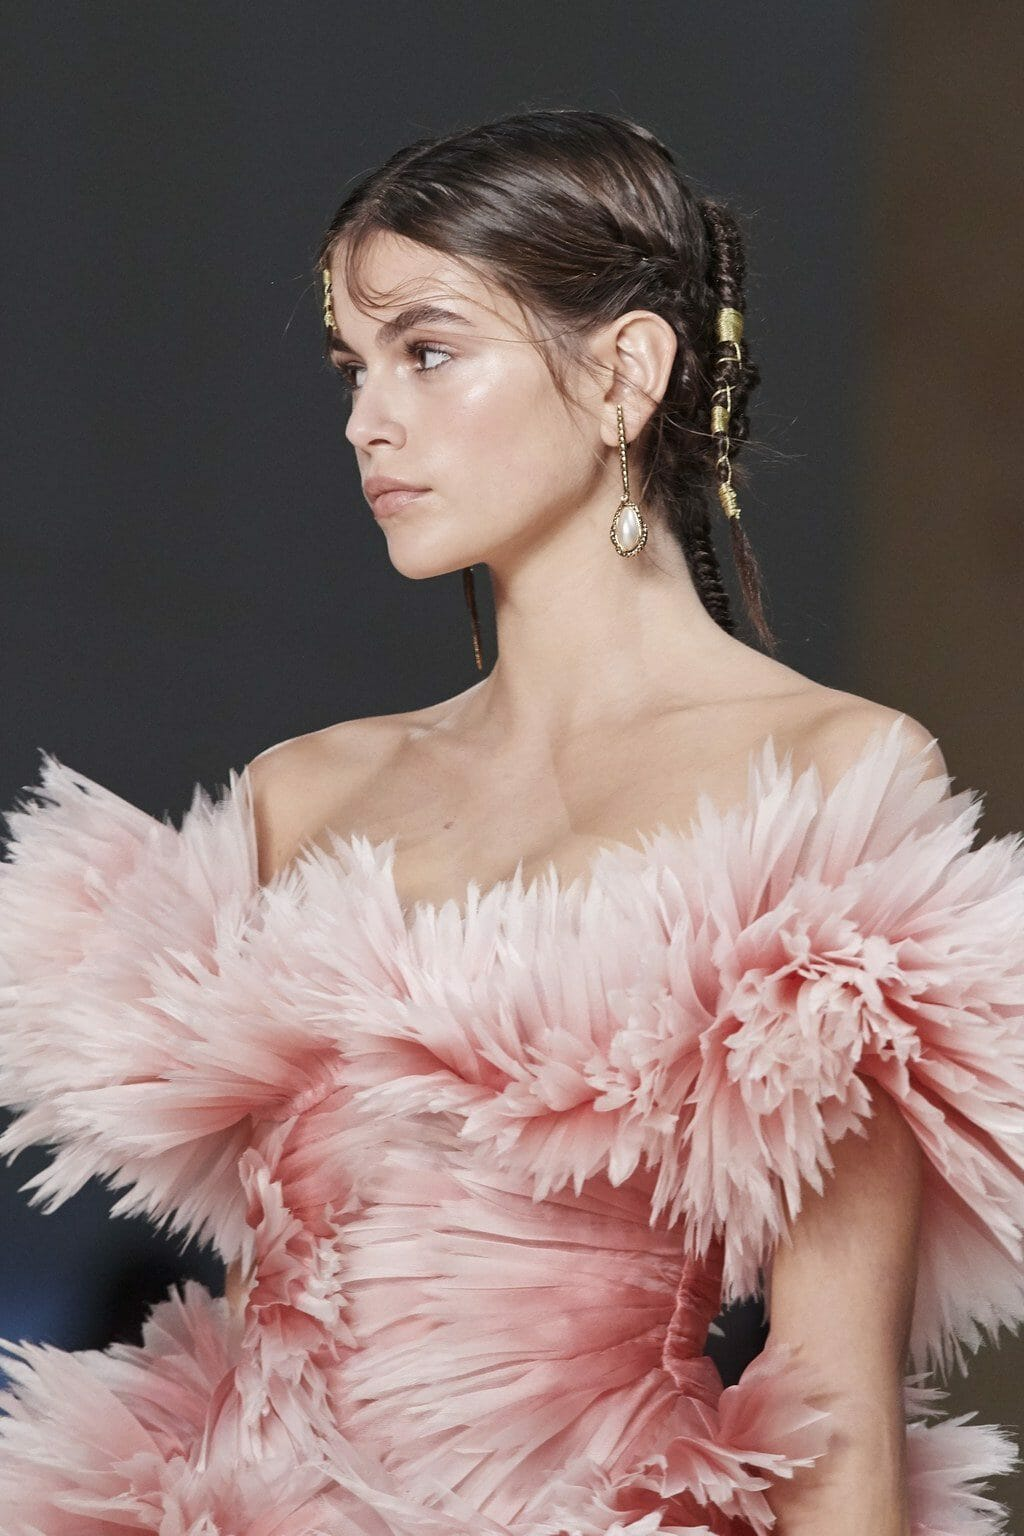 Alexander McQueen Spring Summer 2020 Paris Fashion Week. RUNWAY MAGAZINE ® Collections. RUNWAY NOW / RUNWAY NEW